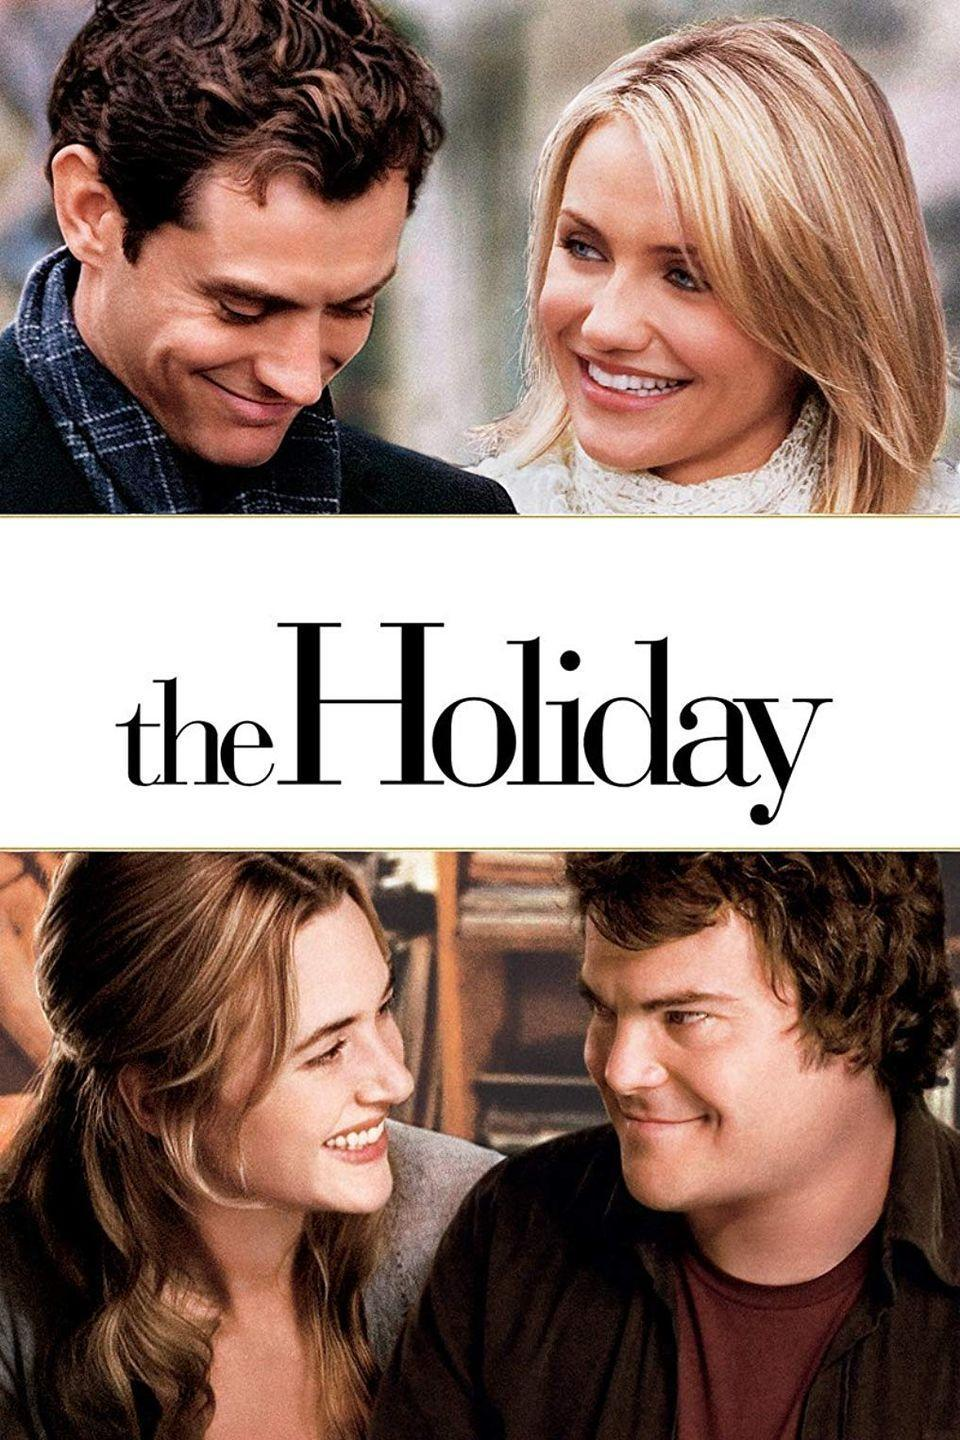 """<p>This romantic comedy about a pair of house-swappers that falls in love abroad will make you want to spend next Christmas in a charming English cottage (and make out with Jude Law).</p><p><a class=""""link rapid-noclick-resp"""" href=""""https://www.amazon.com/Holiday-Cameron-Diaz/dp/B000OBYLVO/?tag=syn-yahoo-20&ascsubtag=%5Bartid%7C10055.g.1315%5Bsrc%7Cyahoo-us"""" rel=""""nofollow noopener"""" target=""""_blank"""" data-ylk=""""slk:WATCH NOW"""">WATCH NOW</a></p>"""